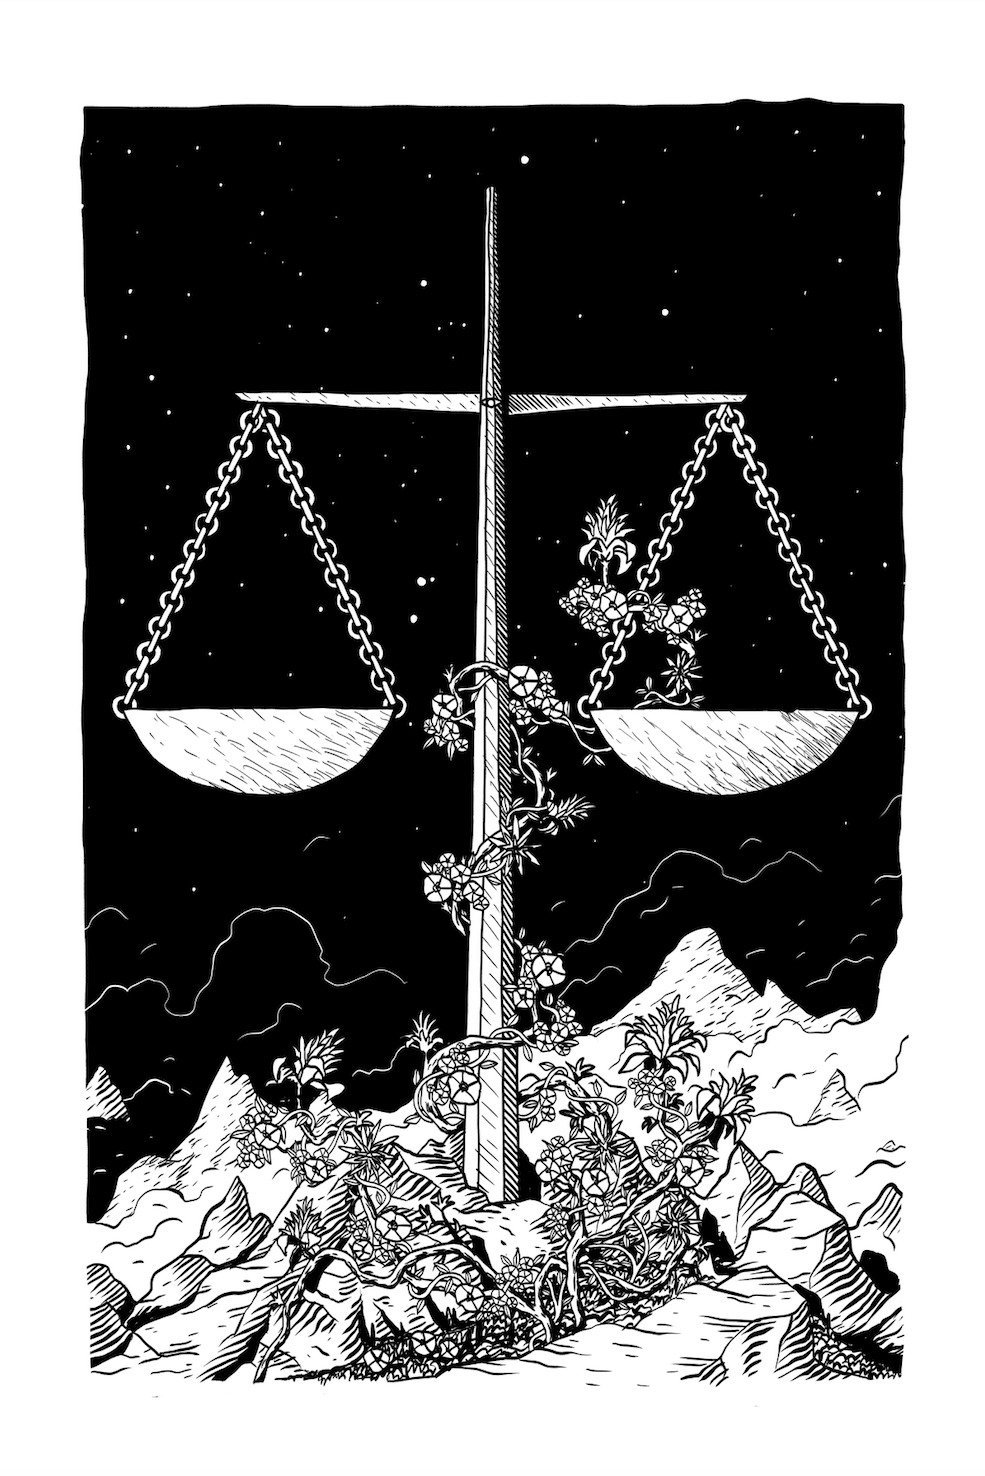 Libra, by Alejandro Cardenas, for sale in our shop